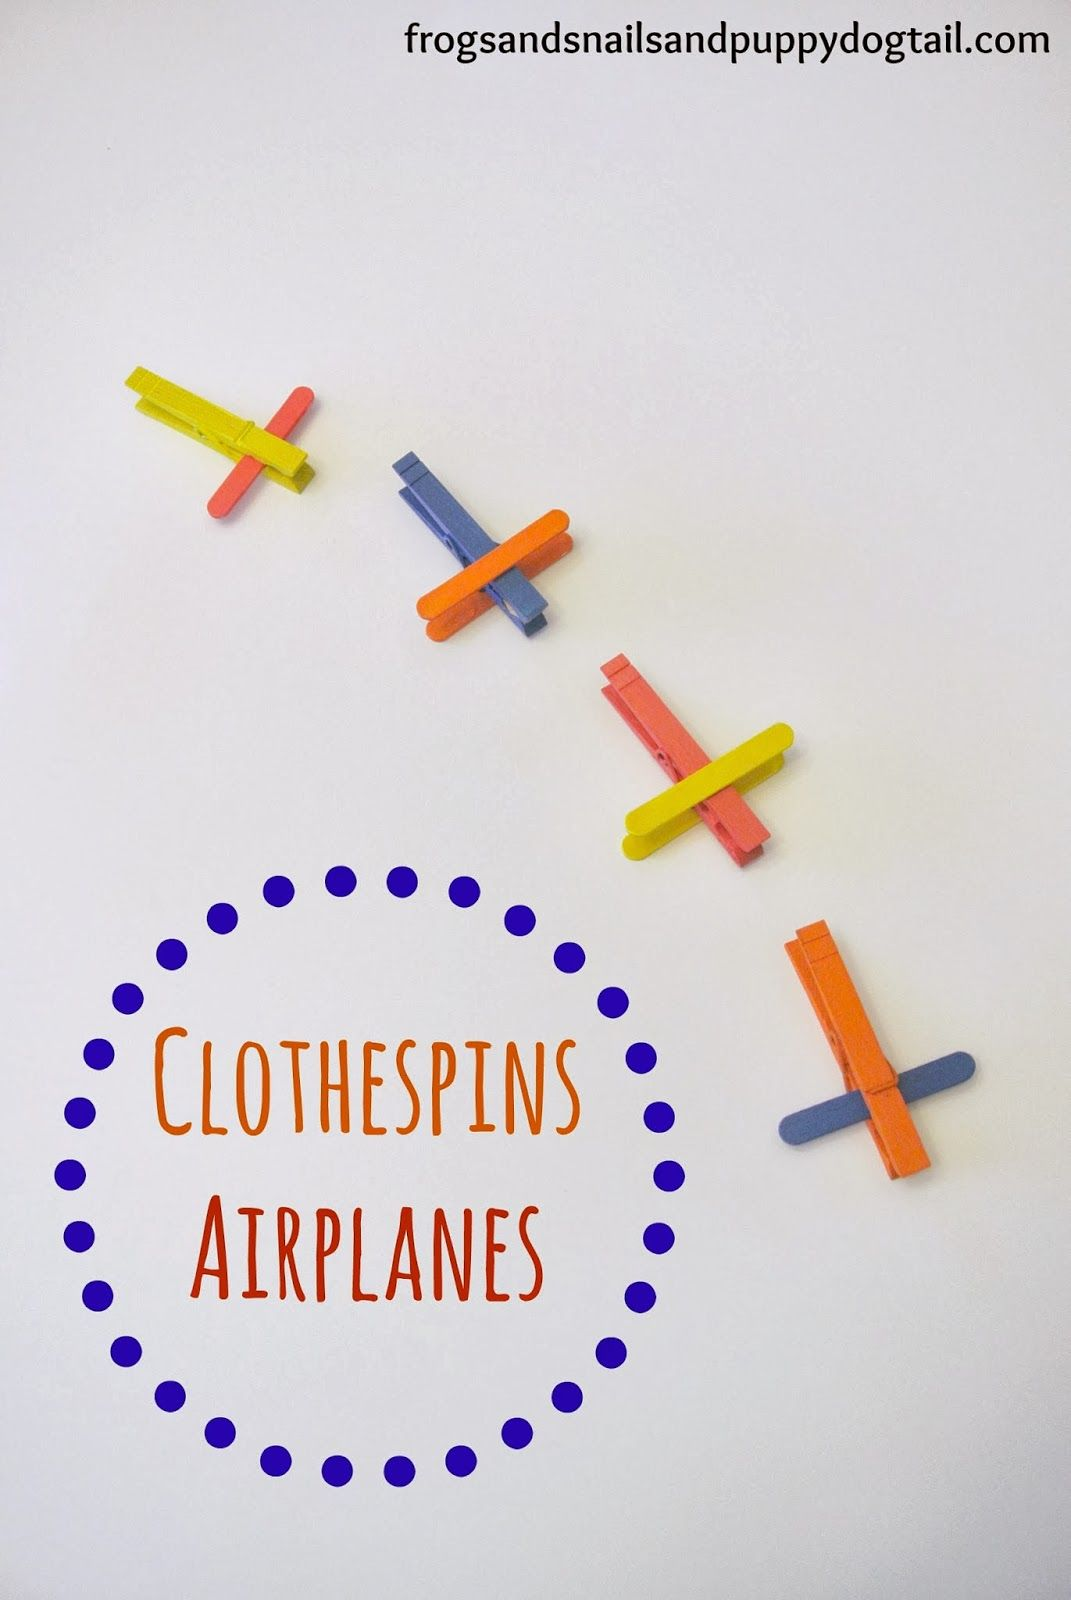 Clothespin Airplanes From Frogs Snails And Puppy Dog